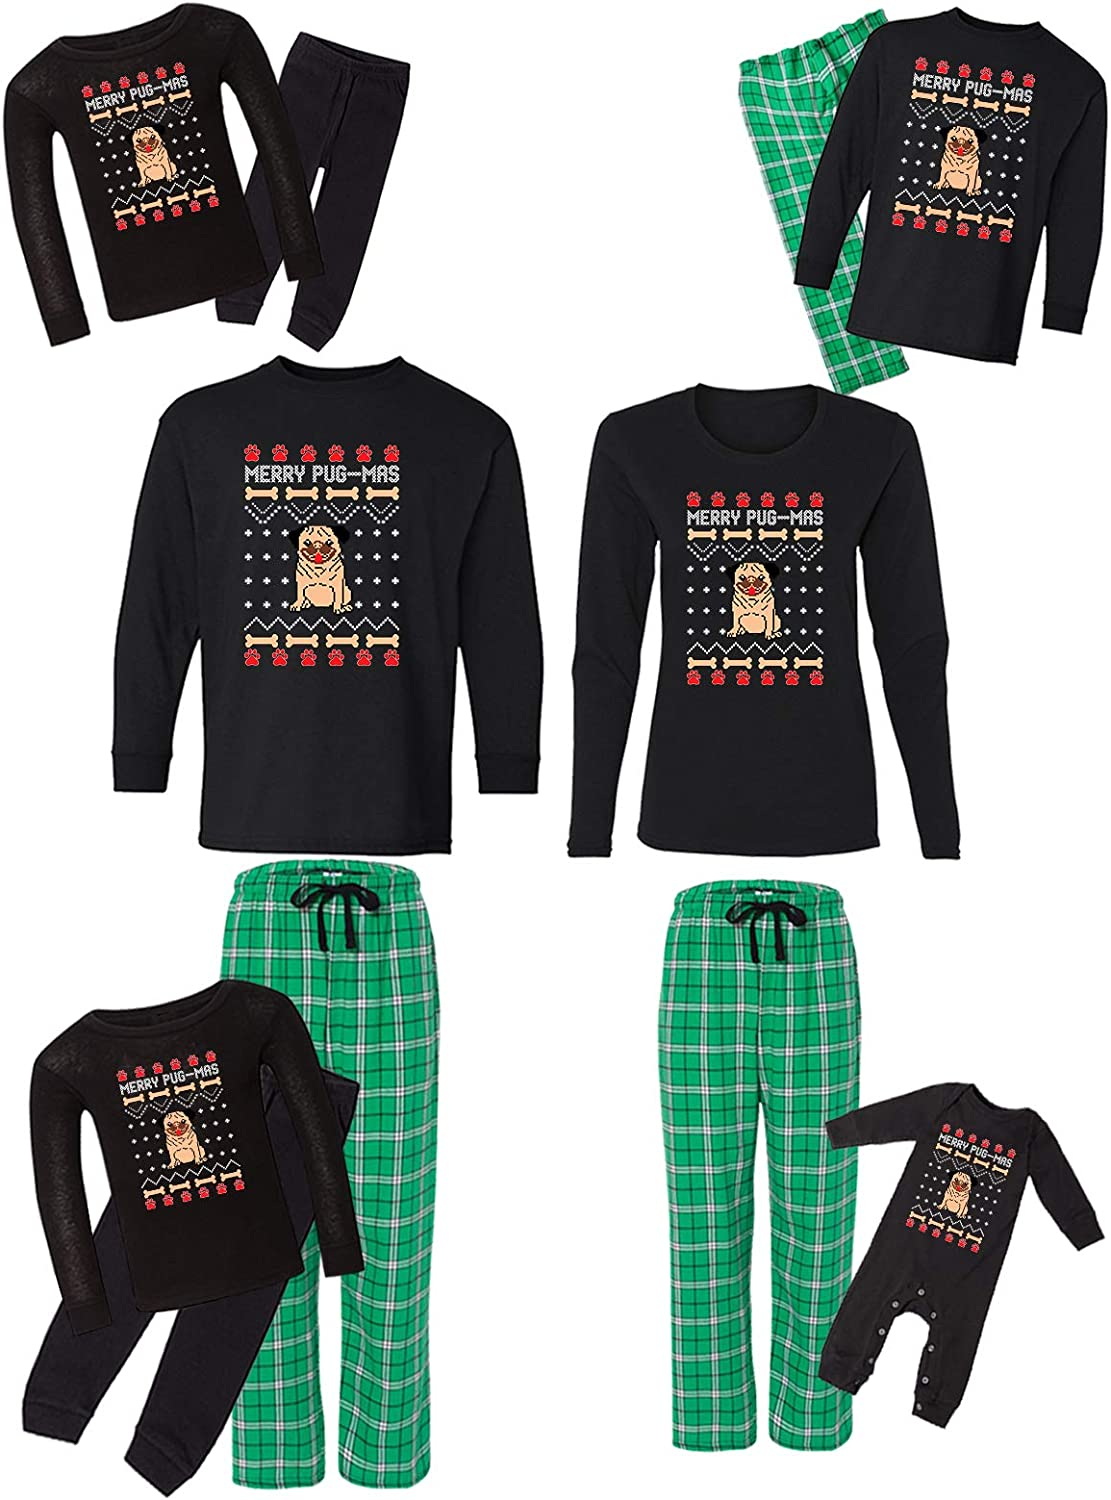 Don't miss the campaign Awkward Styles Family Christmas At the price of surprise Pajamas Green Merry Set Pugmas M